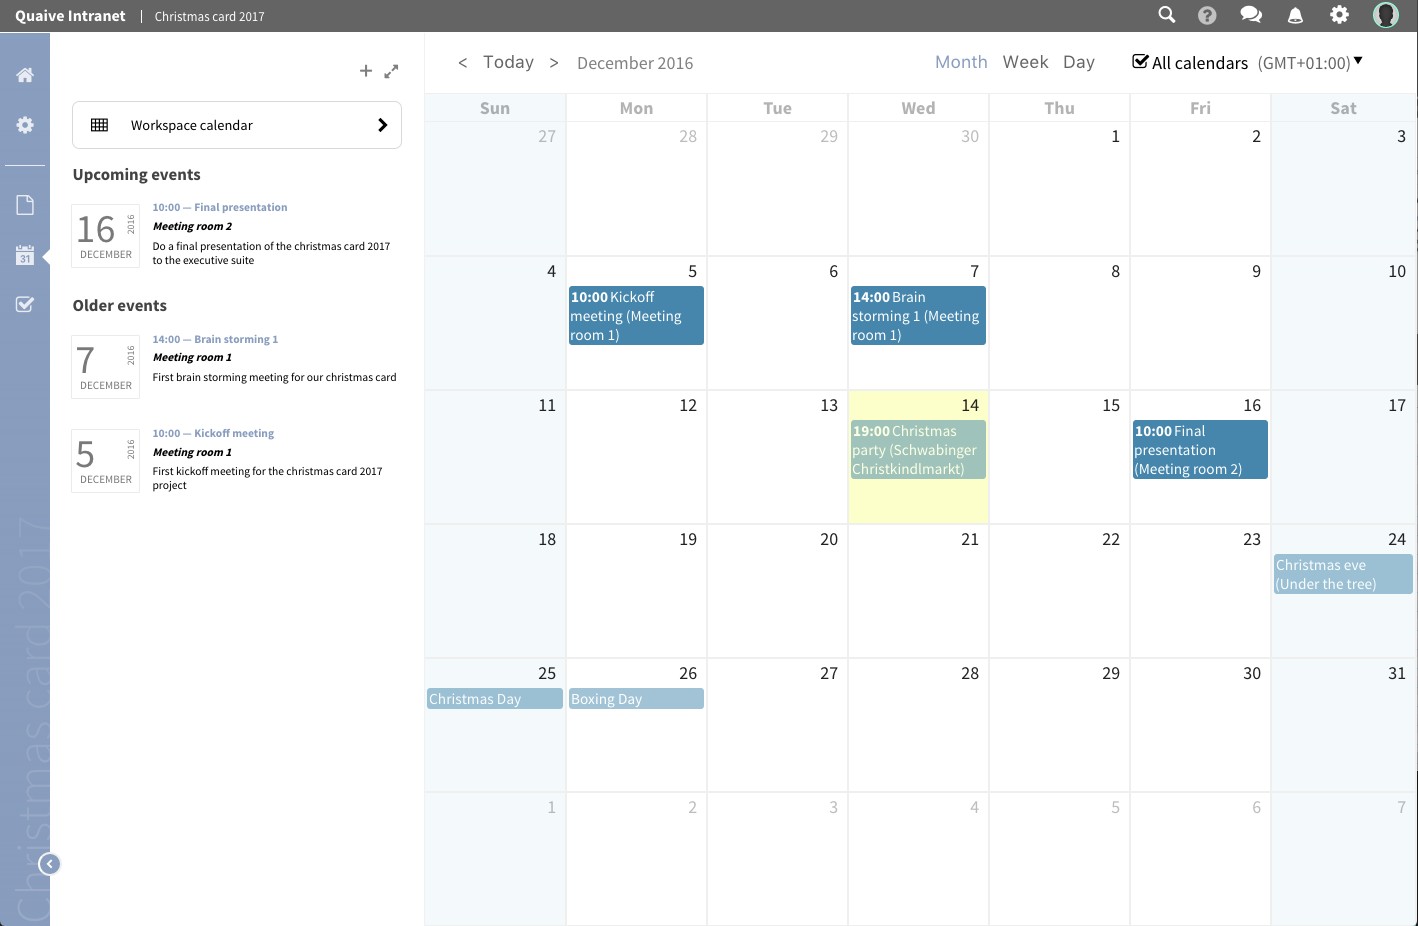 ../../../_images/events-calendar-4.png